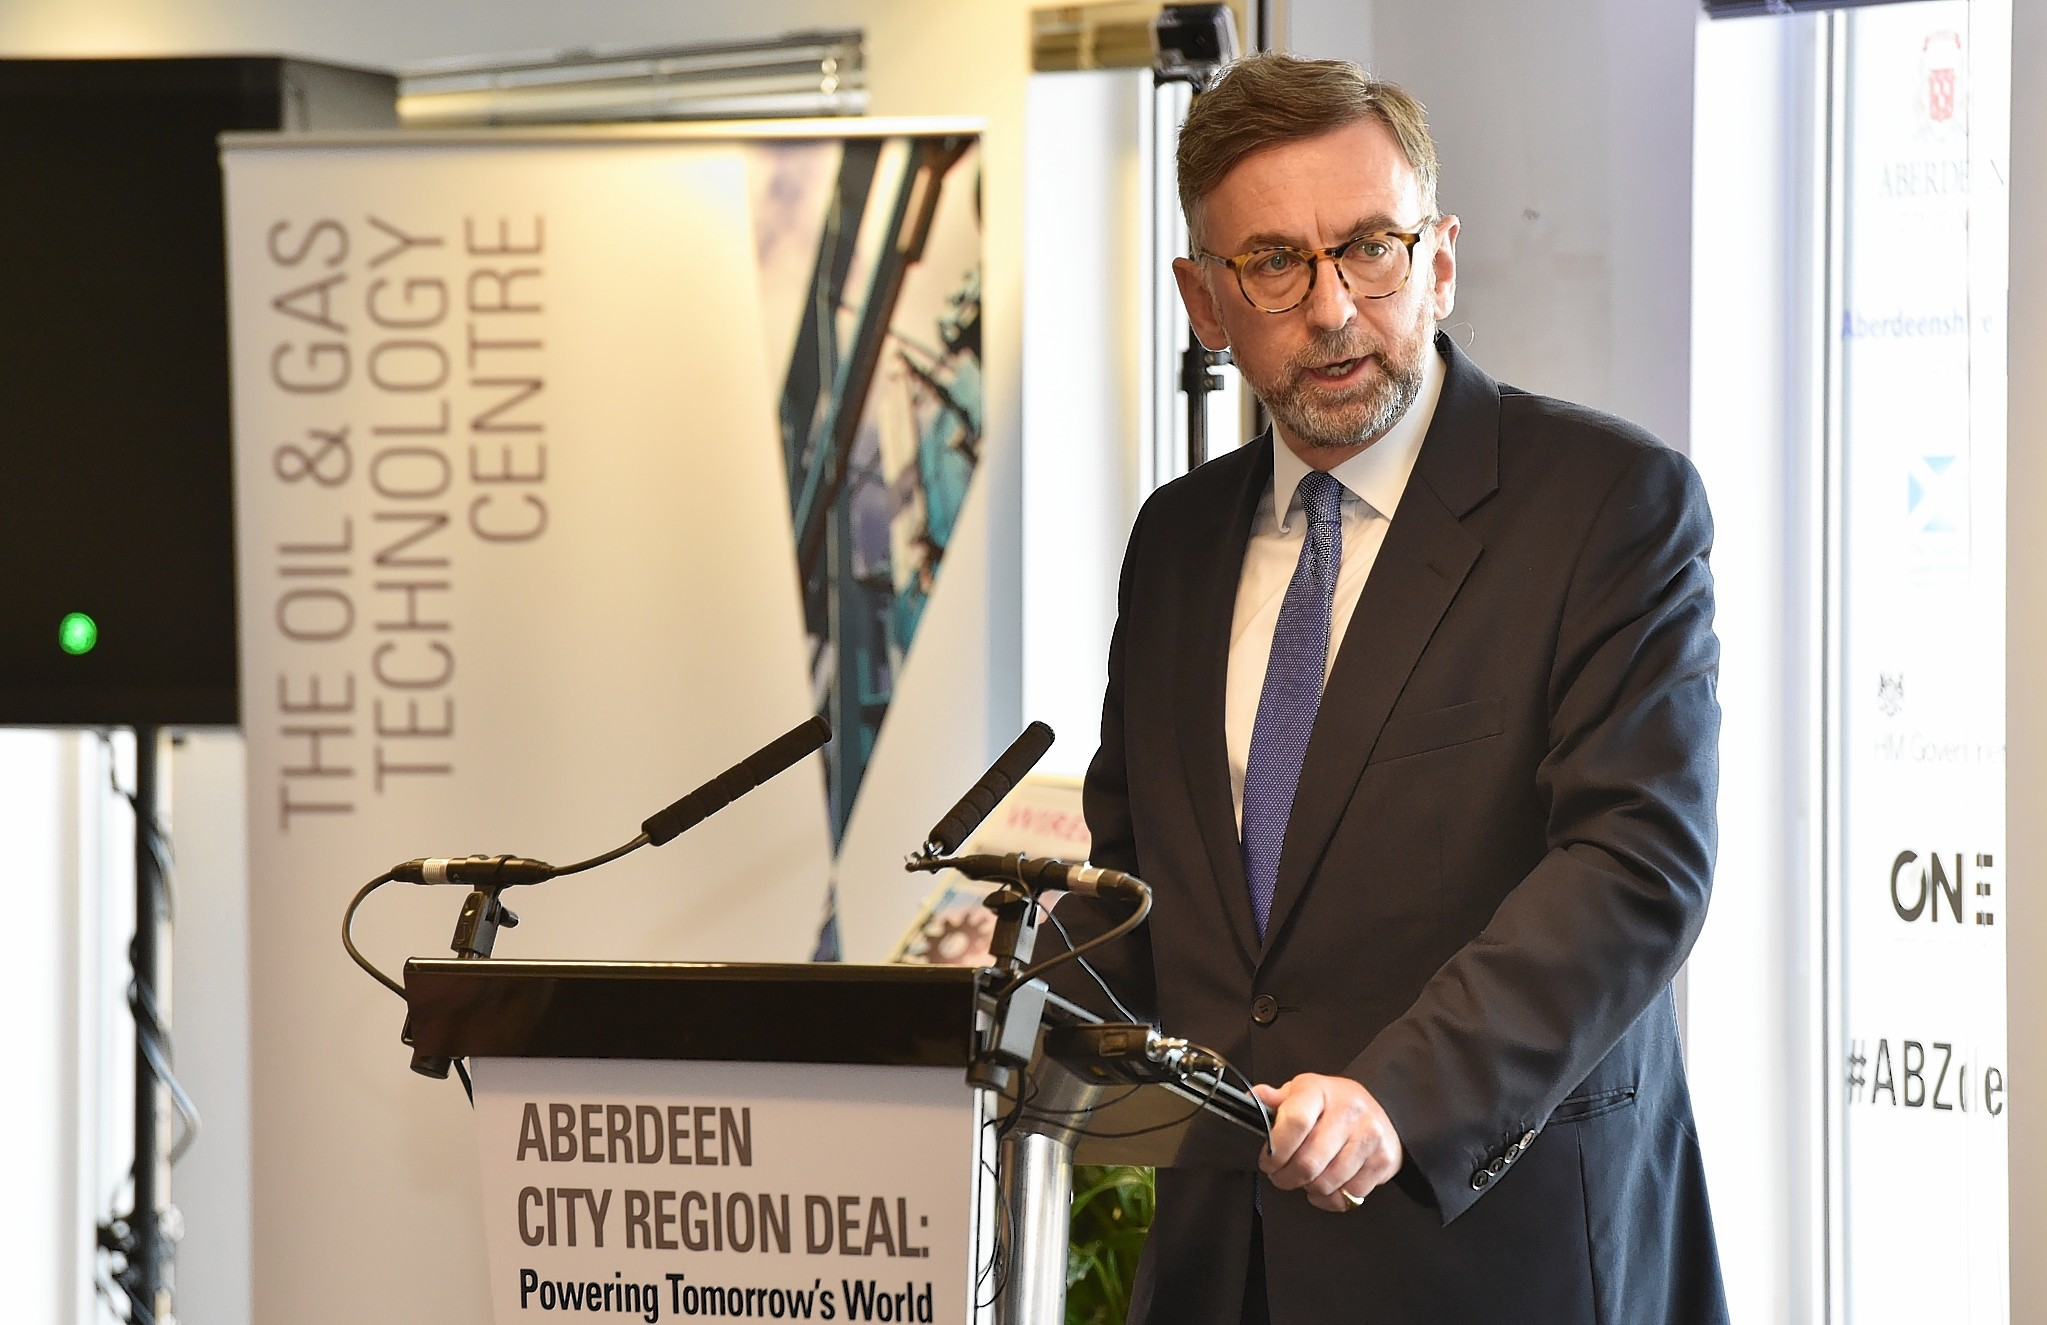 Lord Dunlop at the signing of the Aberdeen City Region Deal.